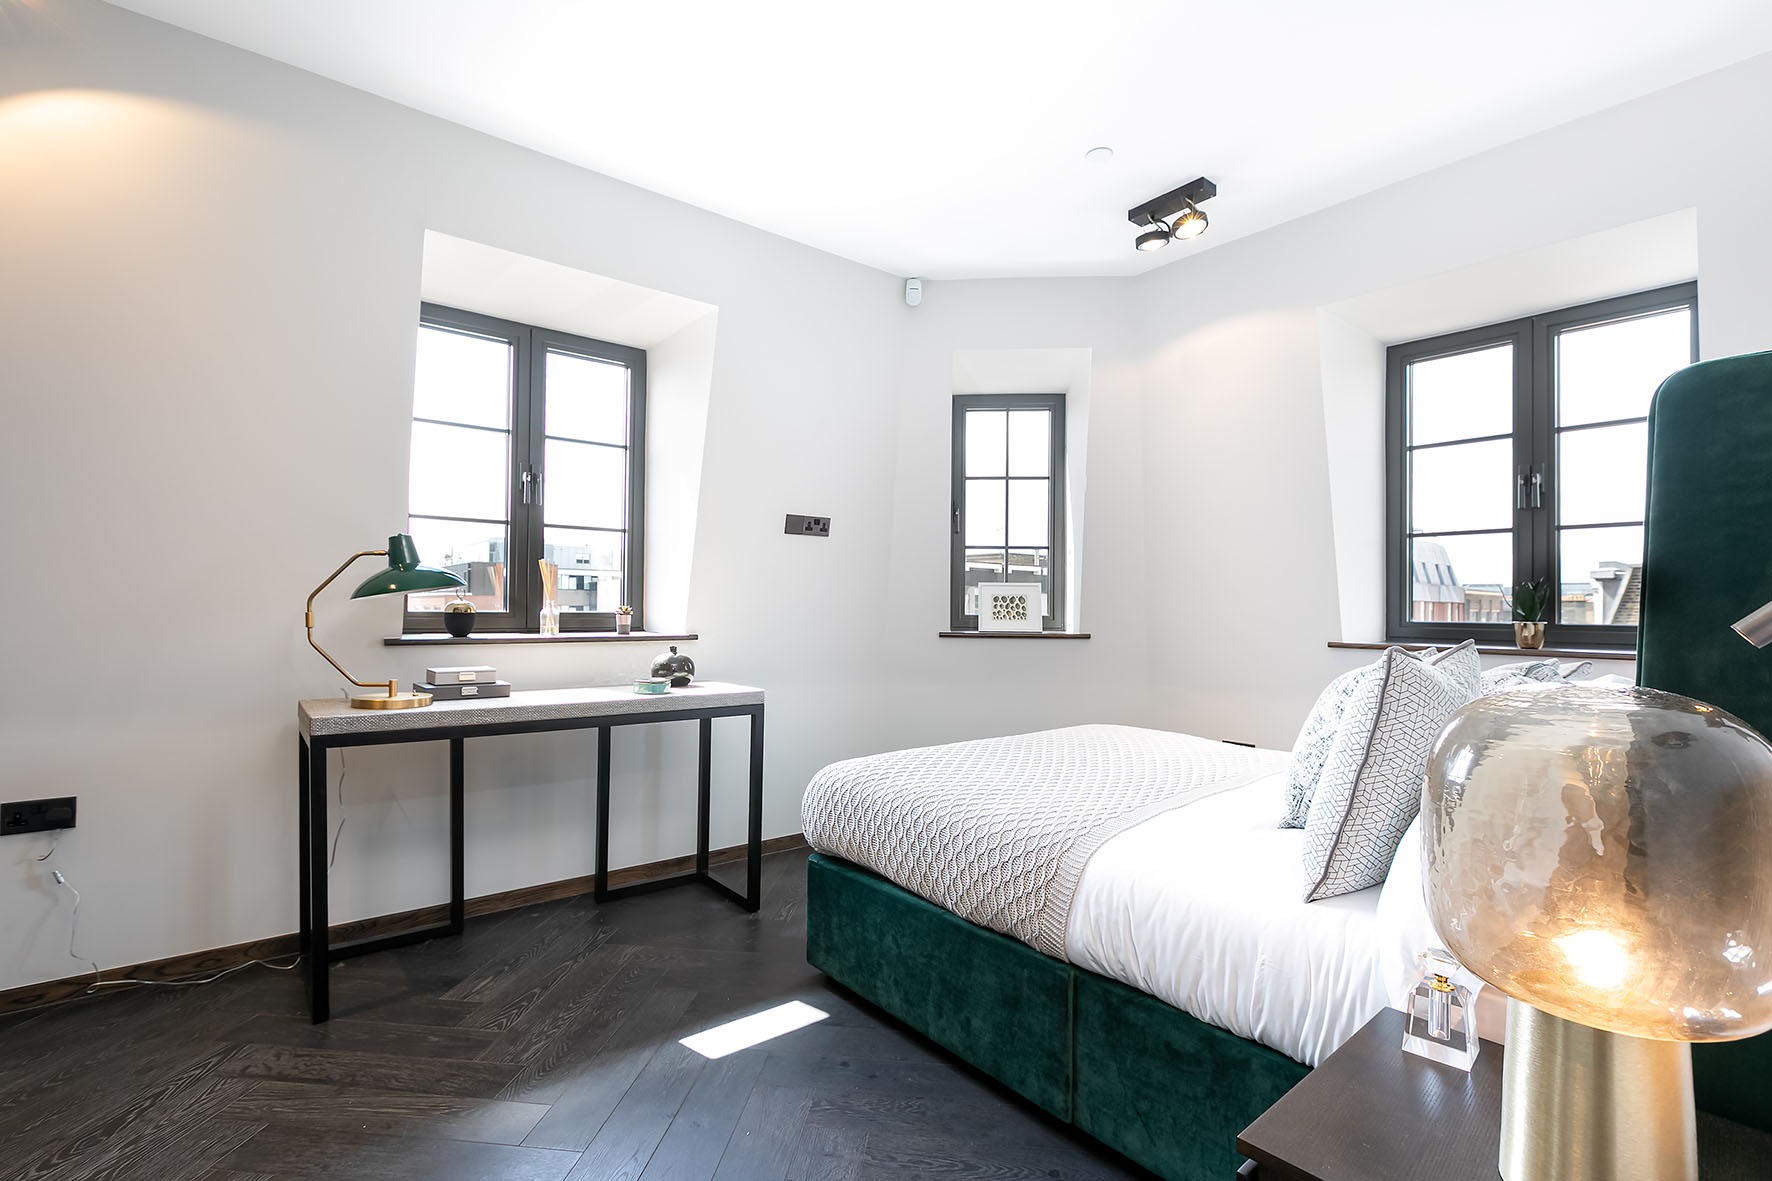 Lovelydays luxury service apartment rental - London - Soho - Great Marlborough St. IX - Lovelysuite - 2 bedrooms - 2 bathrooms - Queen bed - 5 star apartment in london - 8fbd0f163009 - Lovelydays